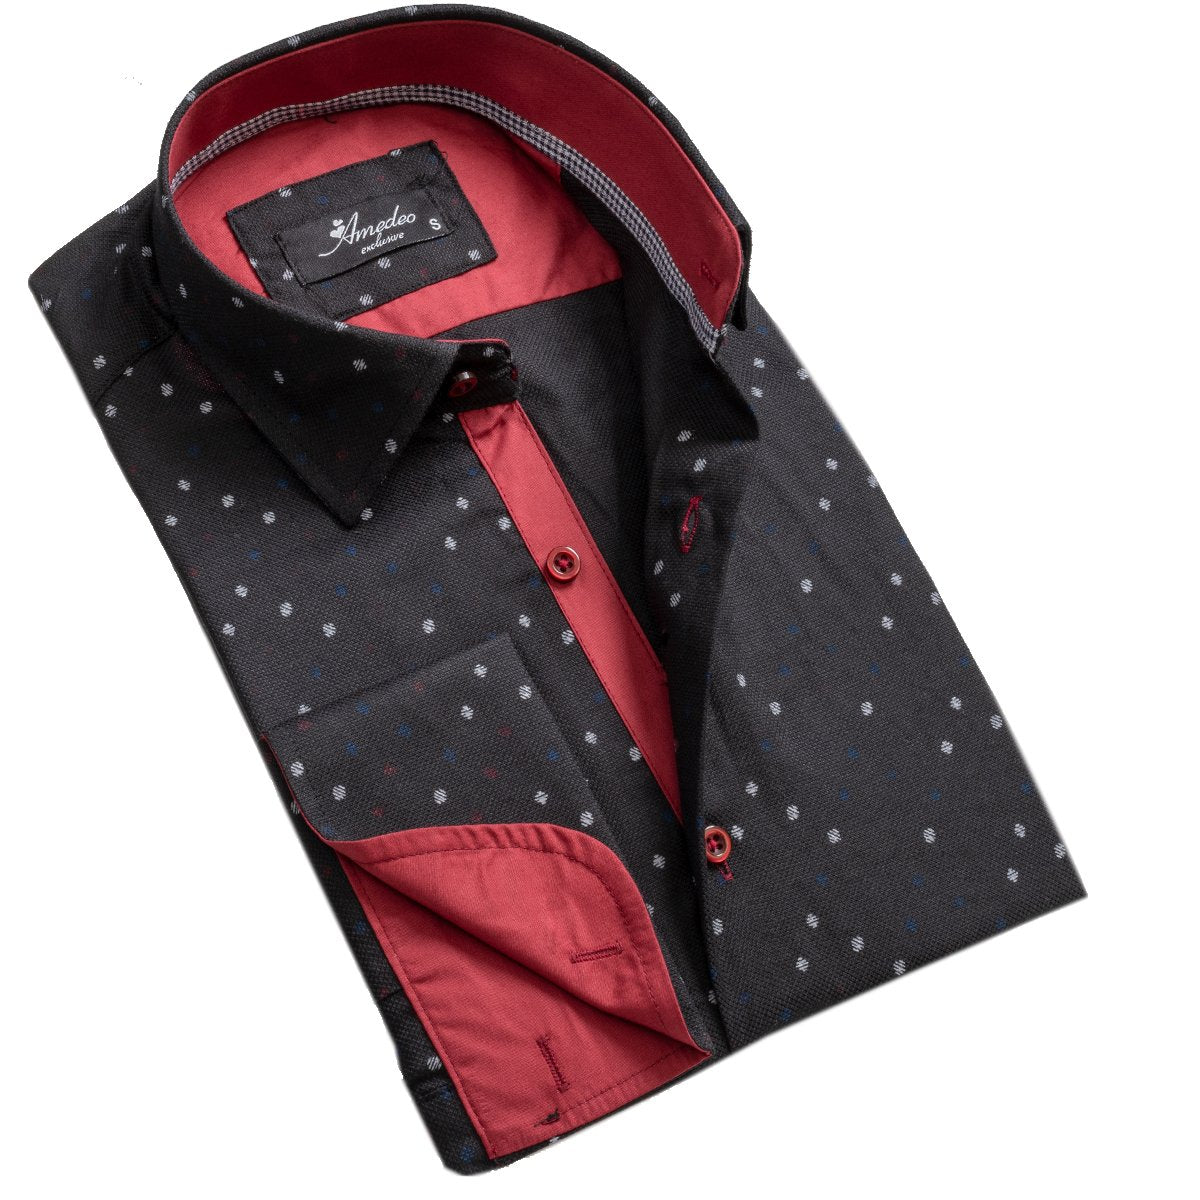 Black And Red Mens Slim Fit French Cuff Dress Shirts with Cufflink Holes - Casual and Formal - Amedeo Exclusive